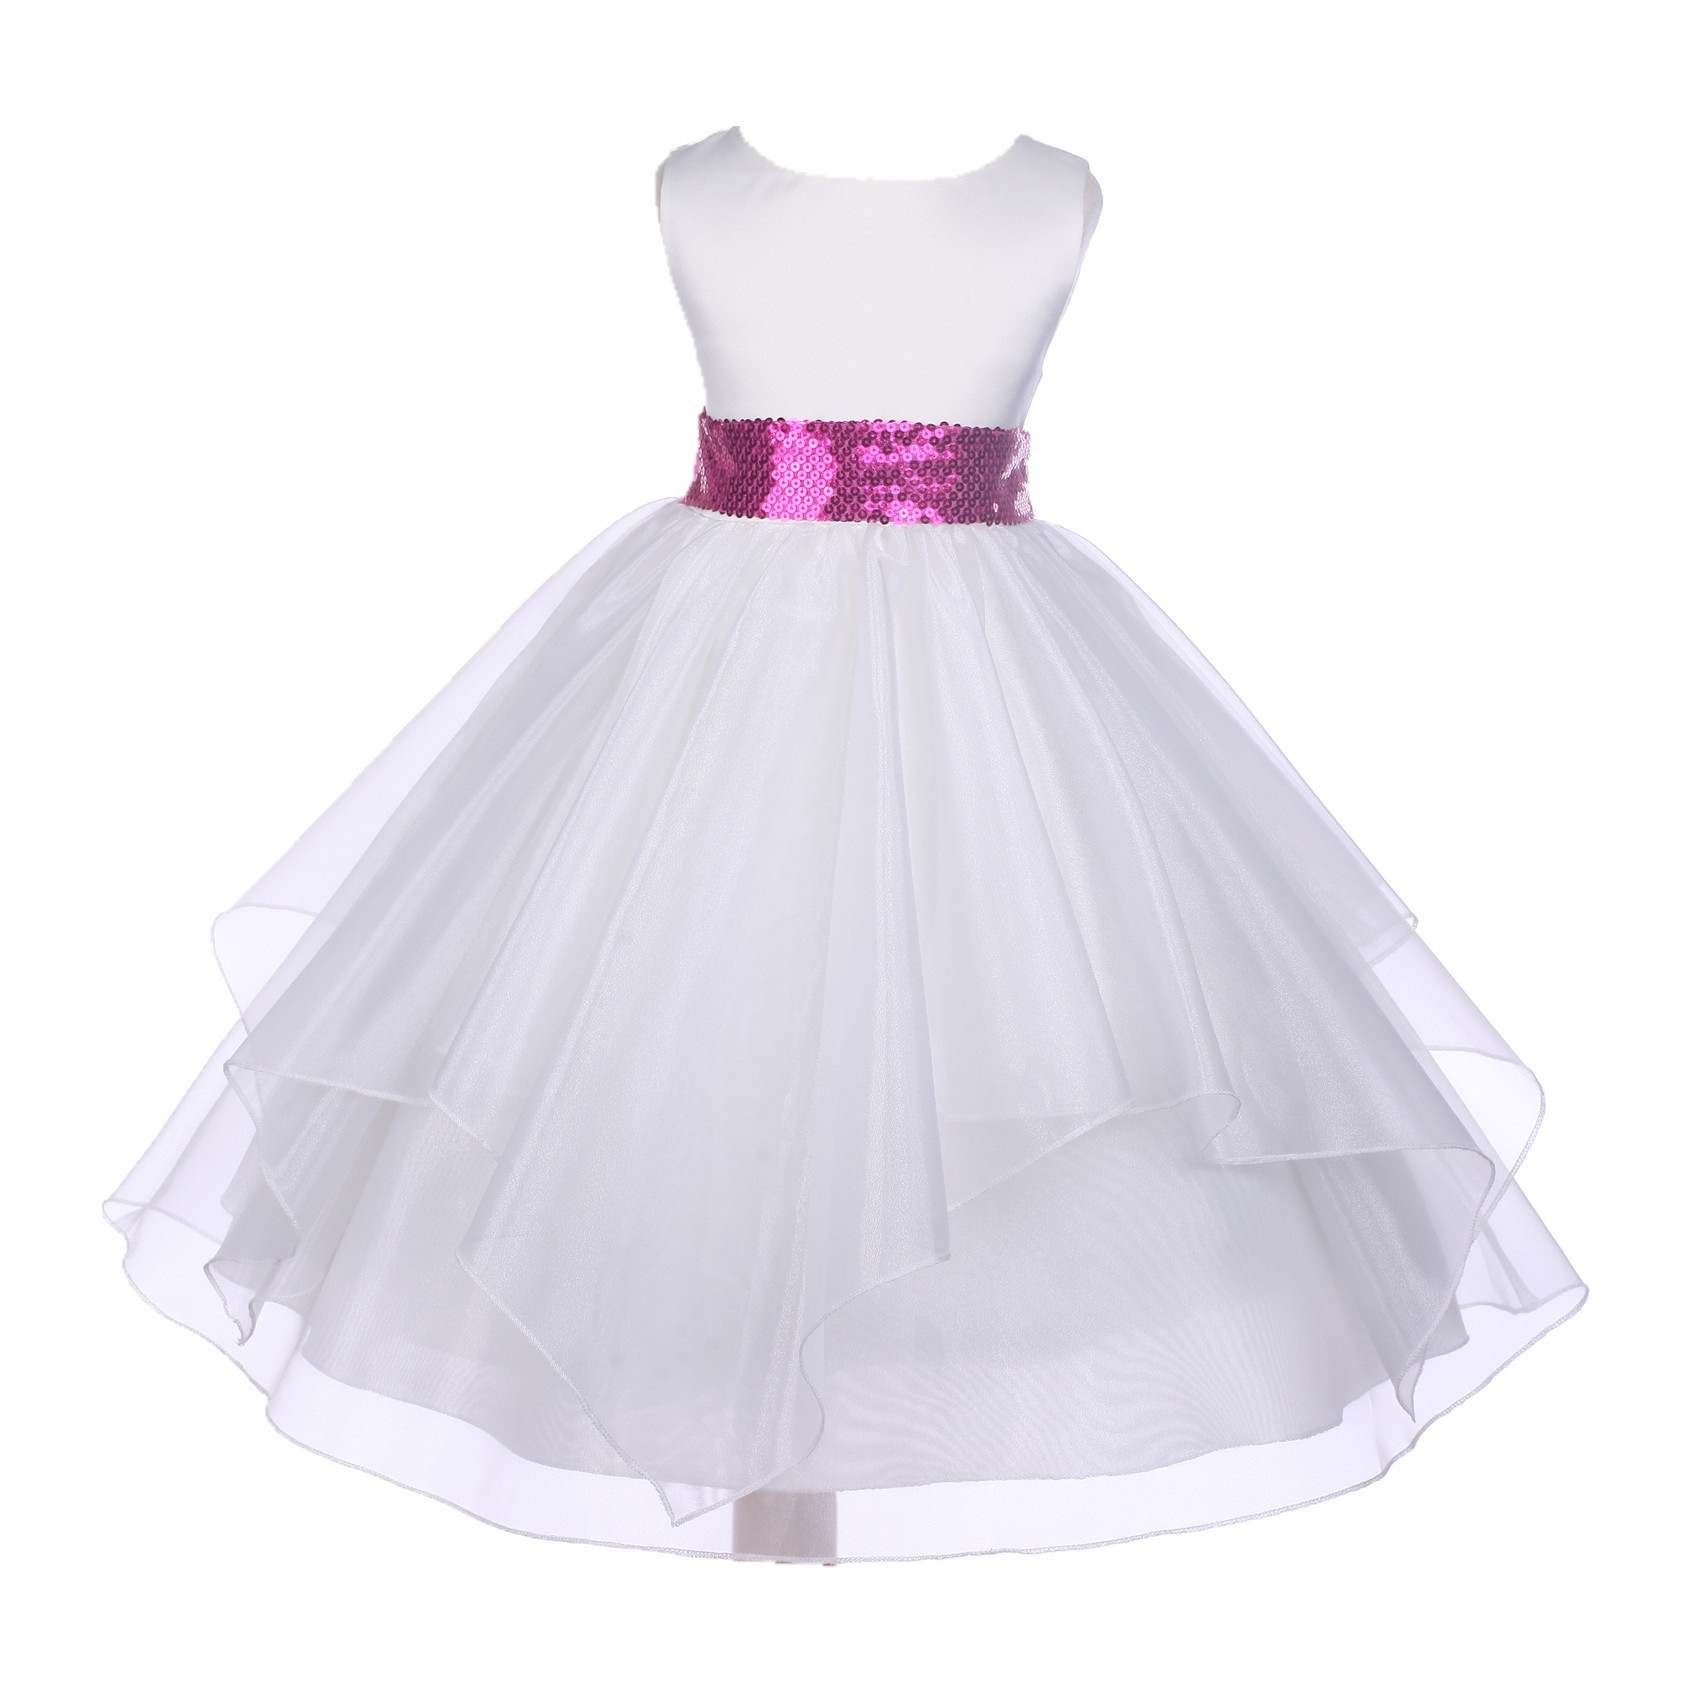 White Satin Organza Fuchsia Sequin Sash Flower Girl Dress J012mh